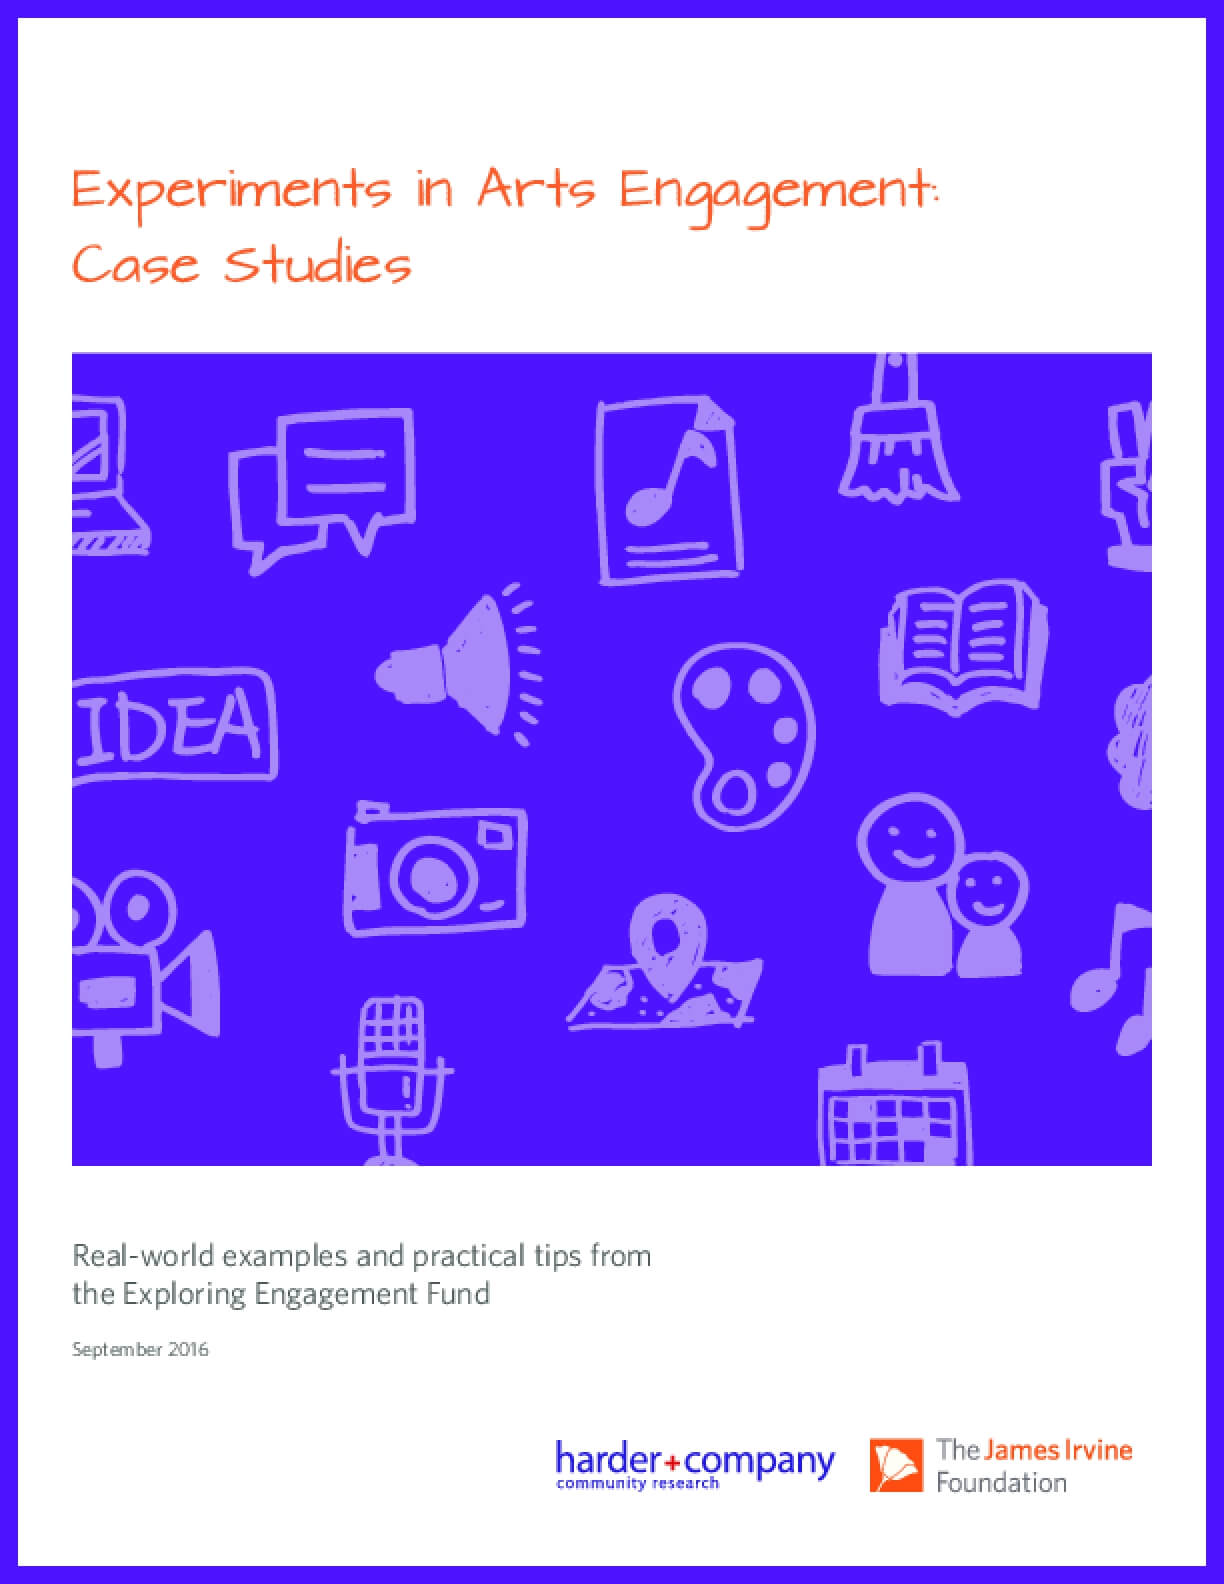 Experiments in Arts Engagement: Case Studies